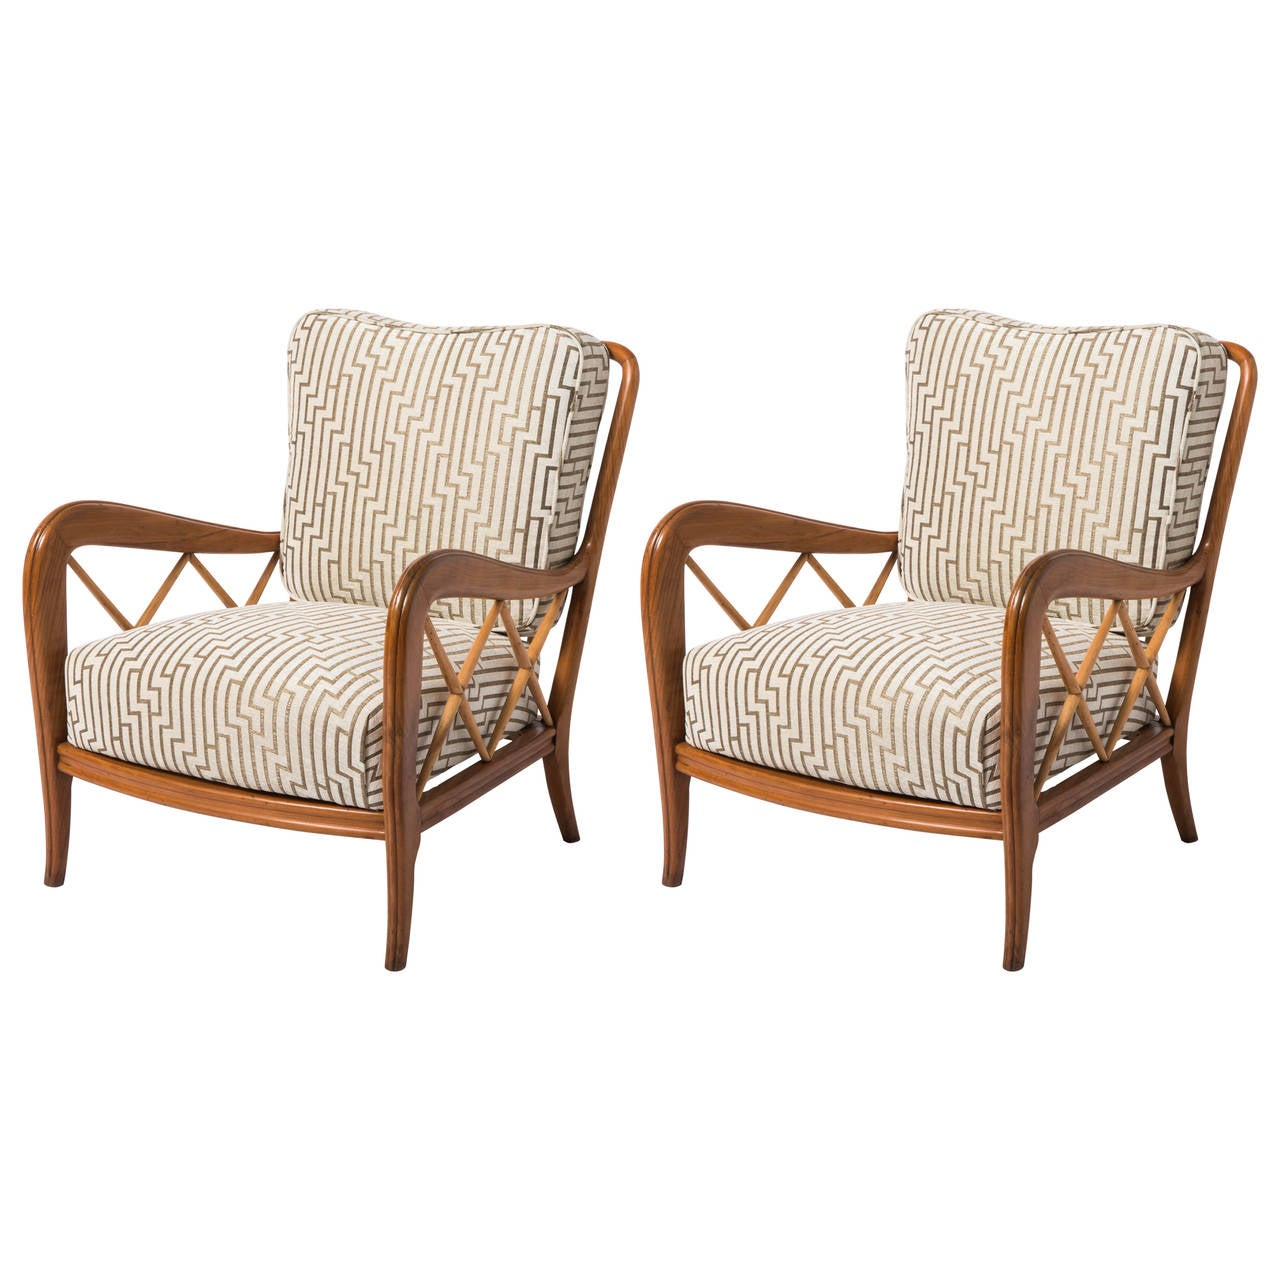 Cherry wood armchairs in the style of Paolo Buffa, Italy circa 1940